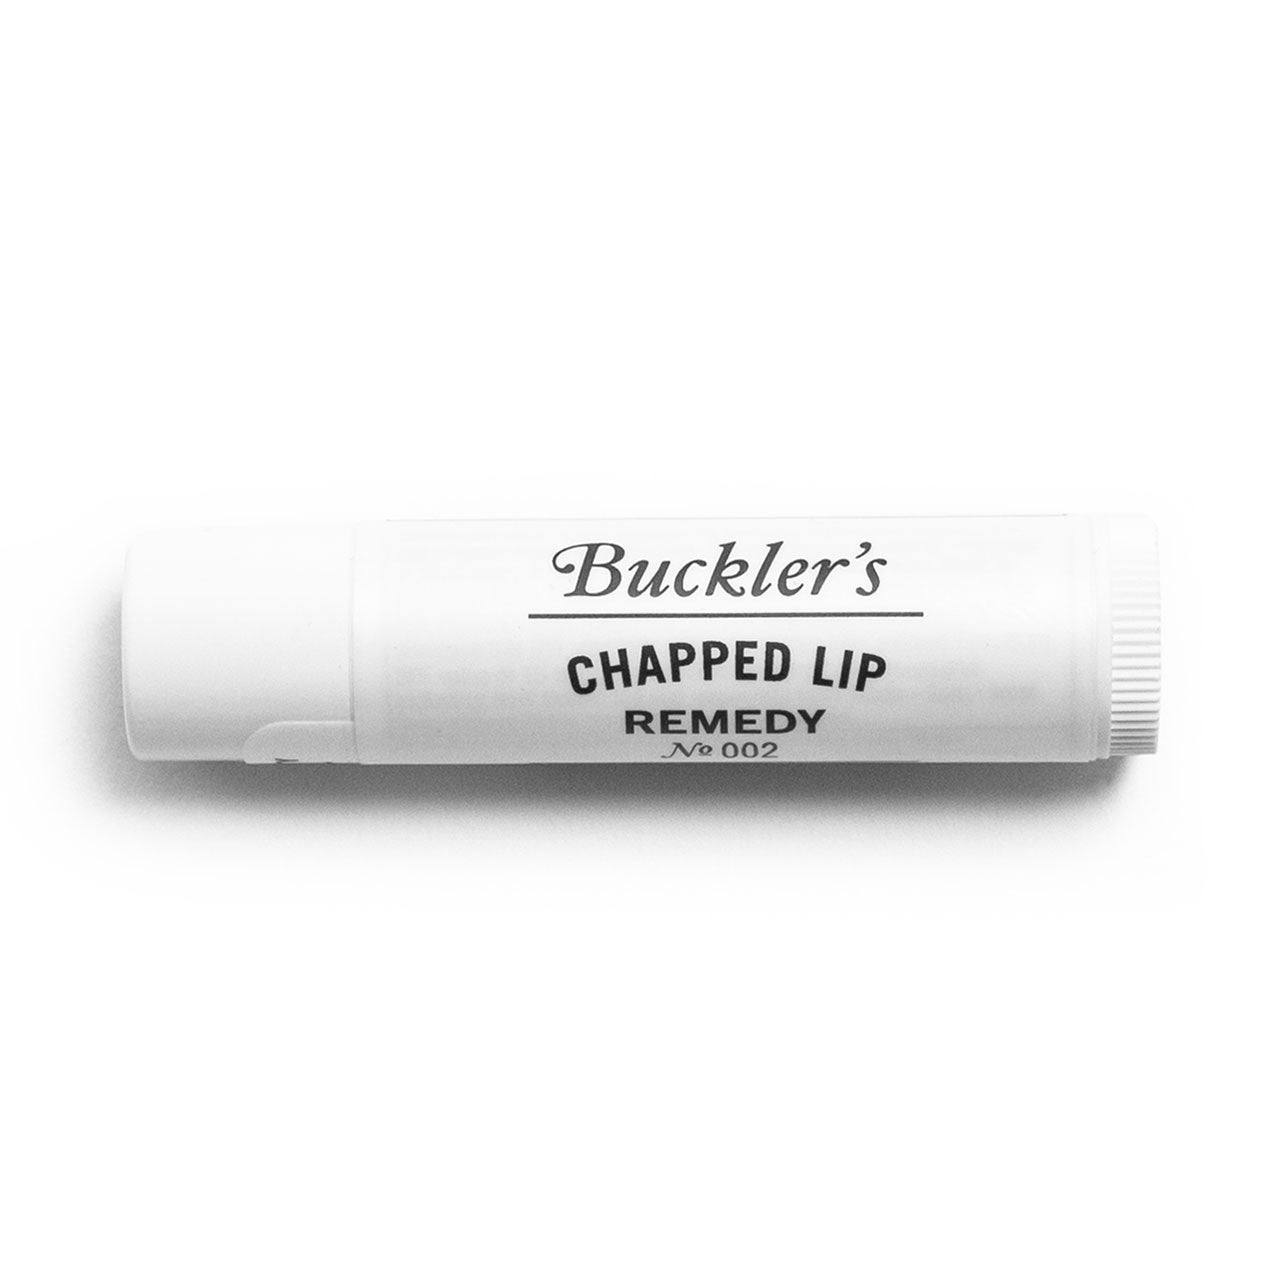 Buckler's Chapped Lip Remedy